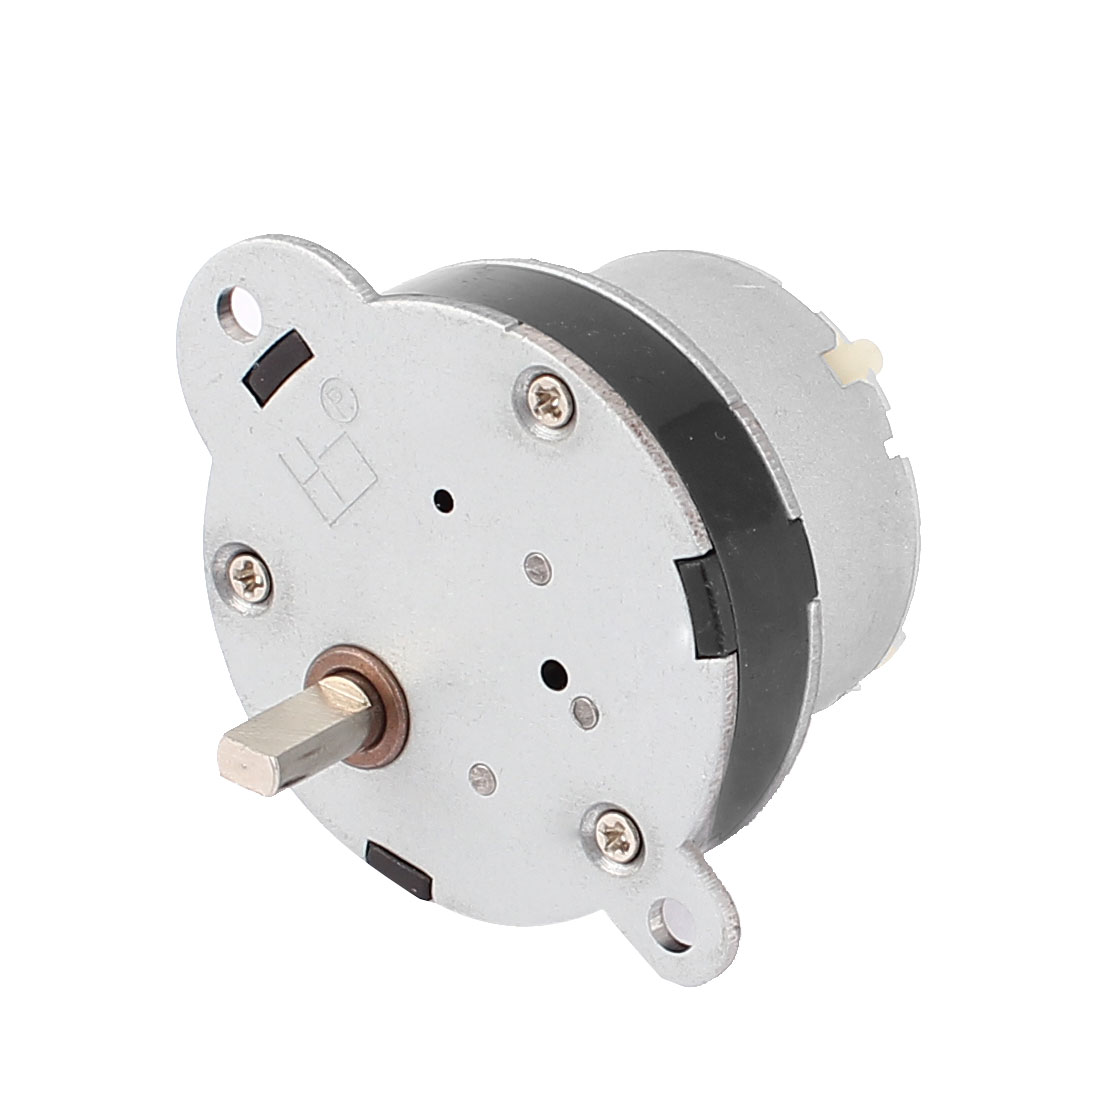 DC 6V 80RPM 10mm Shaft Length Speed Reduction Geared Electric Motor